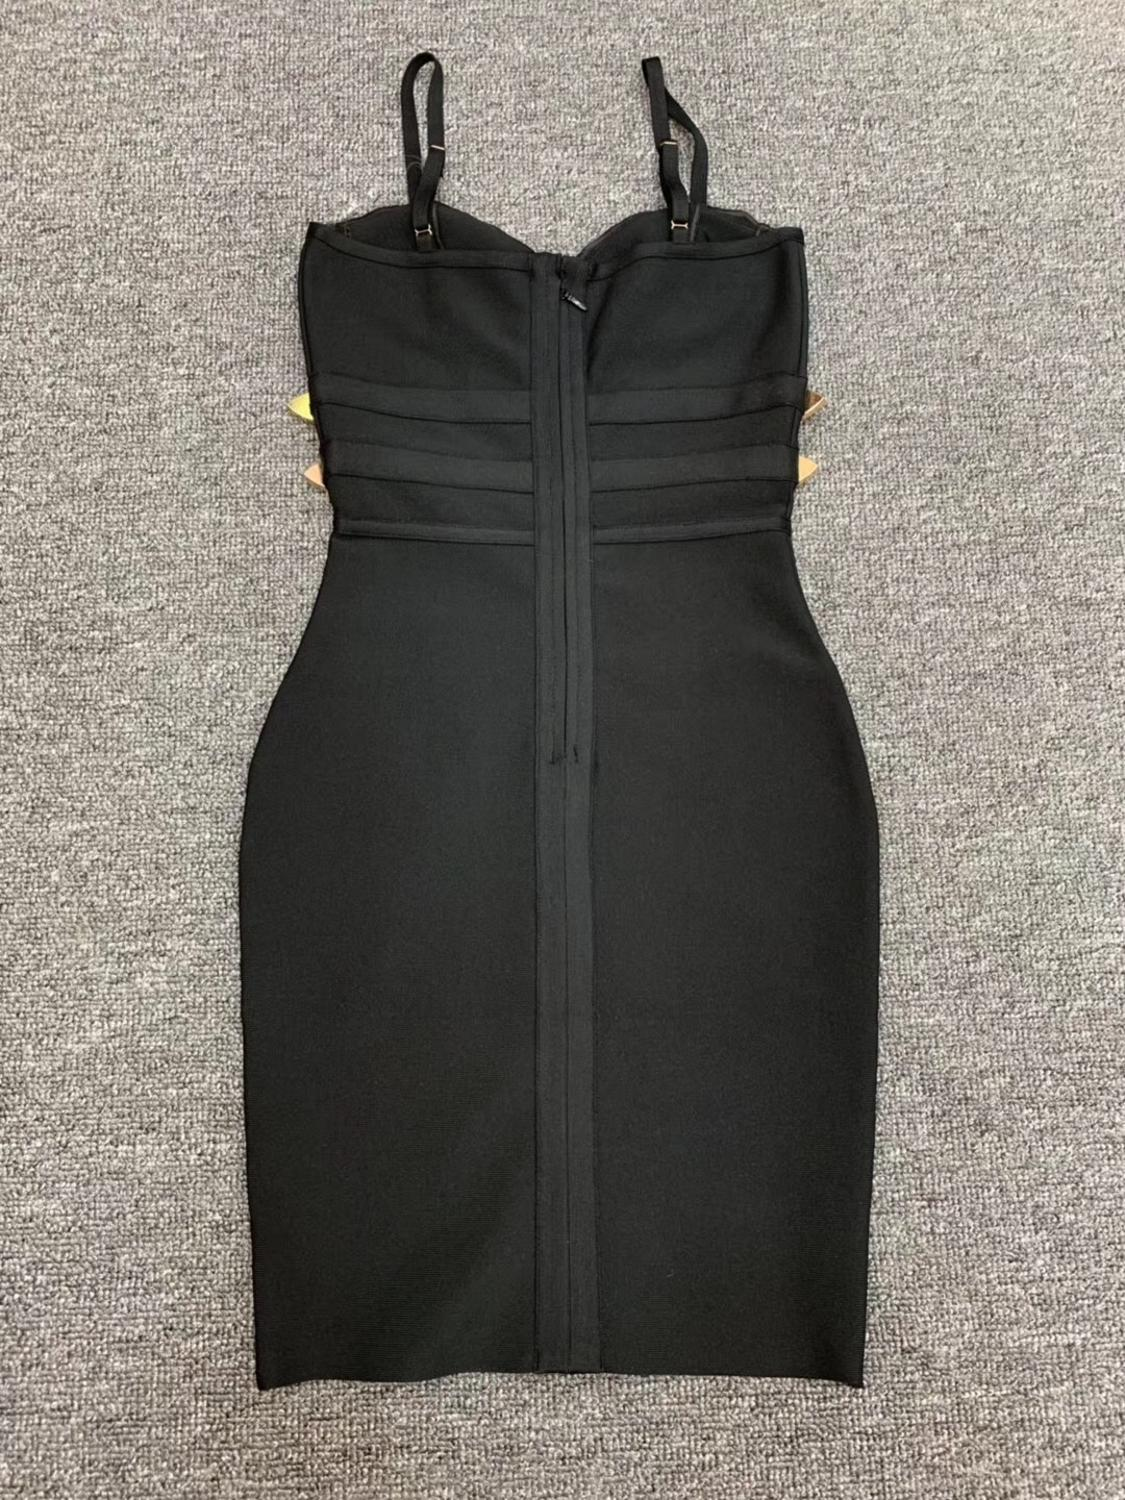 Women Summer Dress Sexy V Neck Backless Black White Bodycon Bandage Dress 2020 Designer Fashion Evening Party Dress Vestido 5